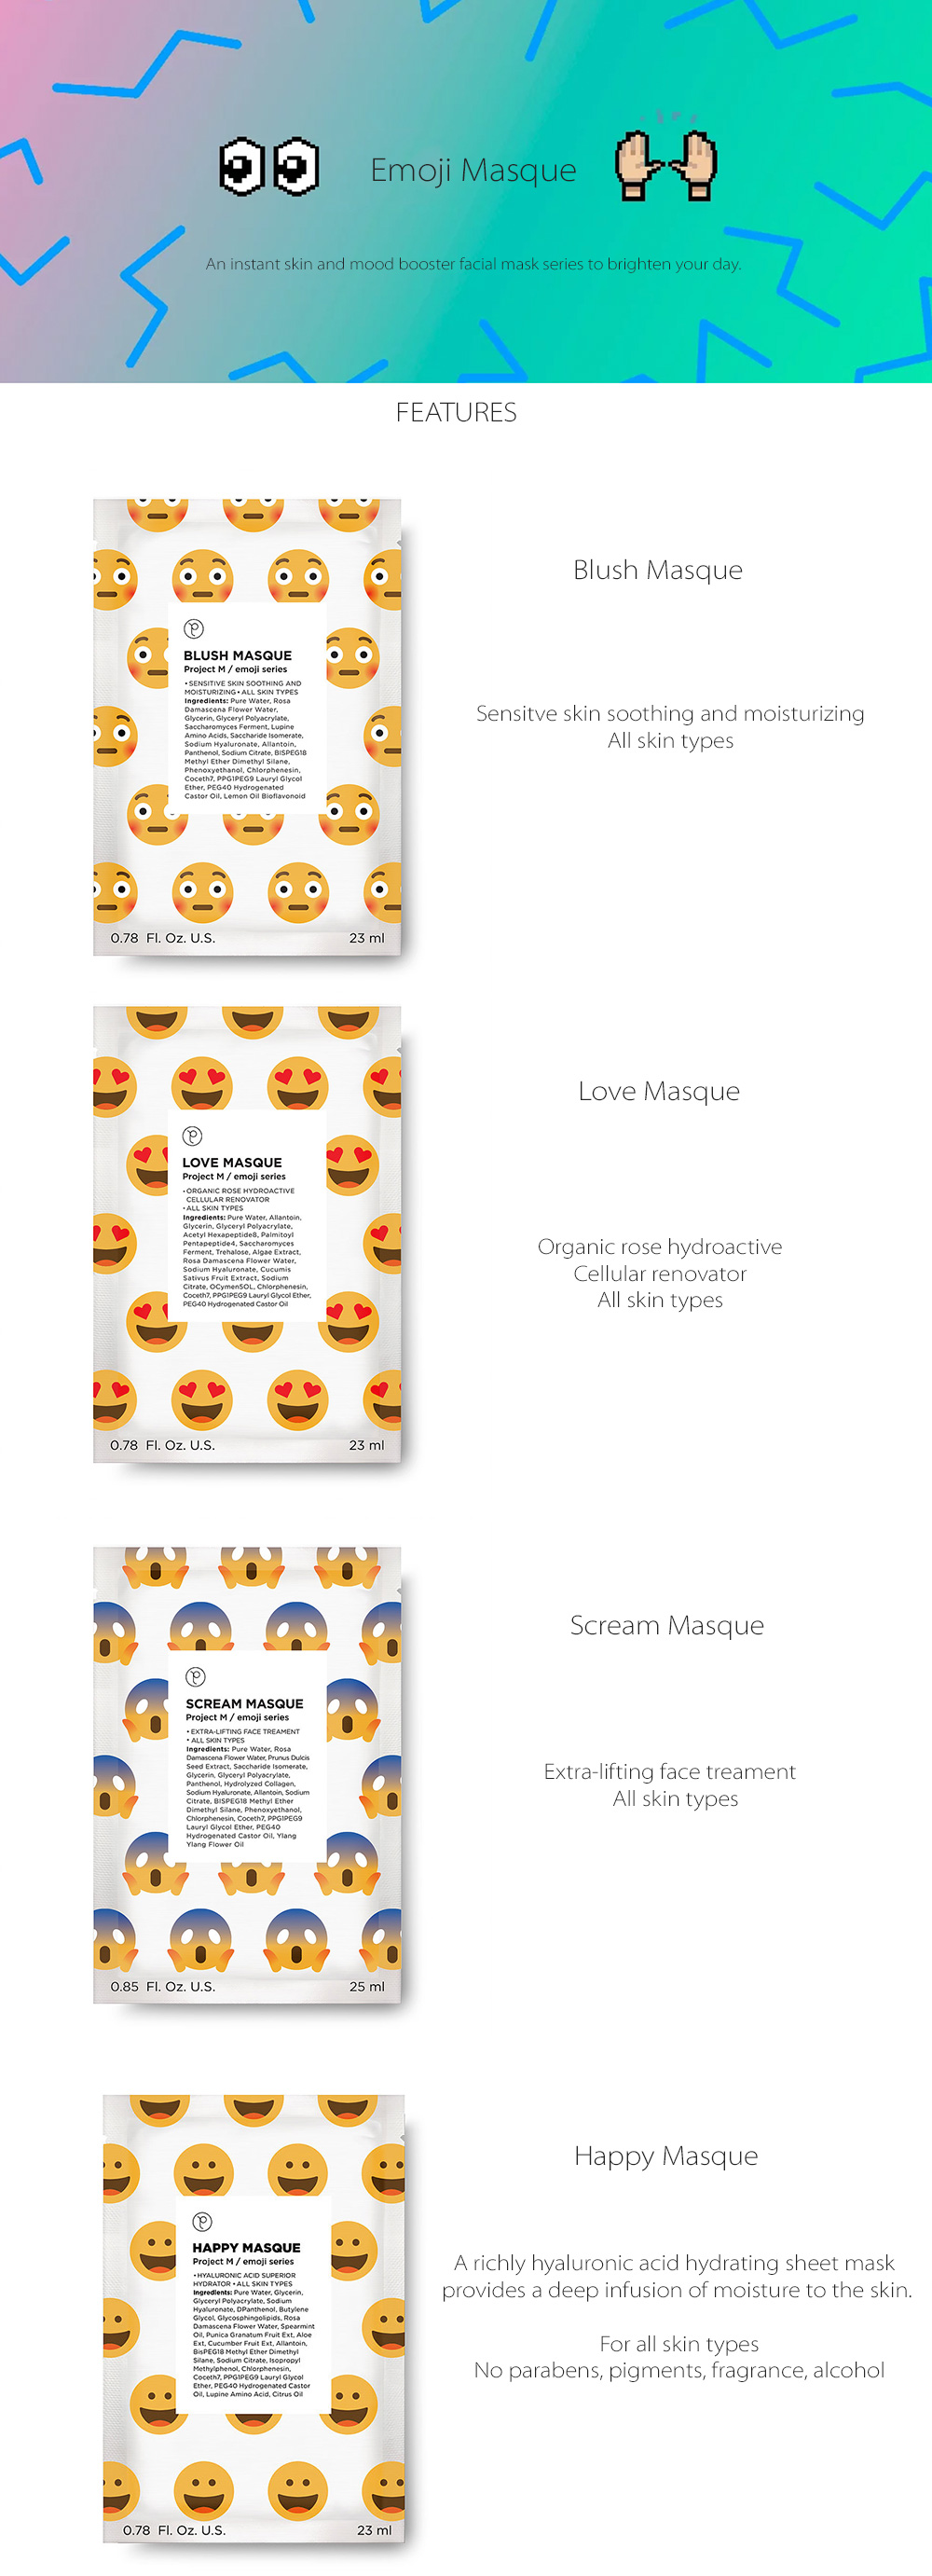 Emoji Masque Silly Little Face is Here